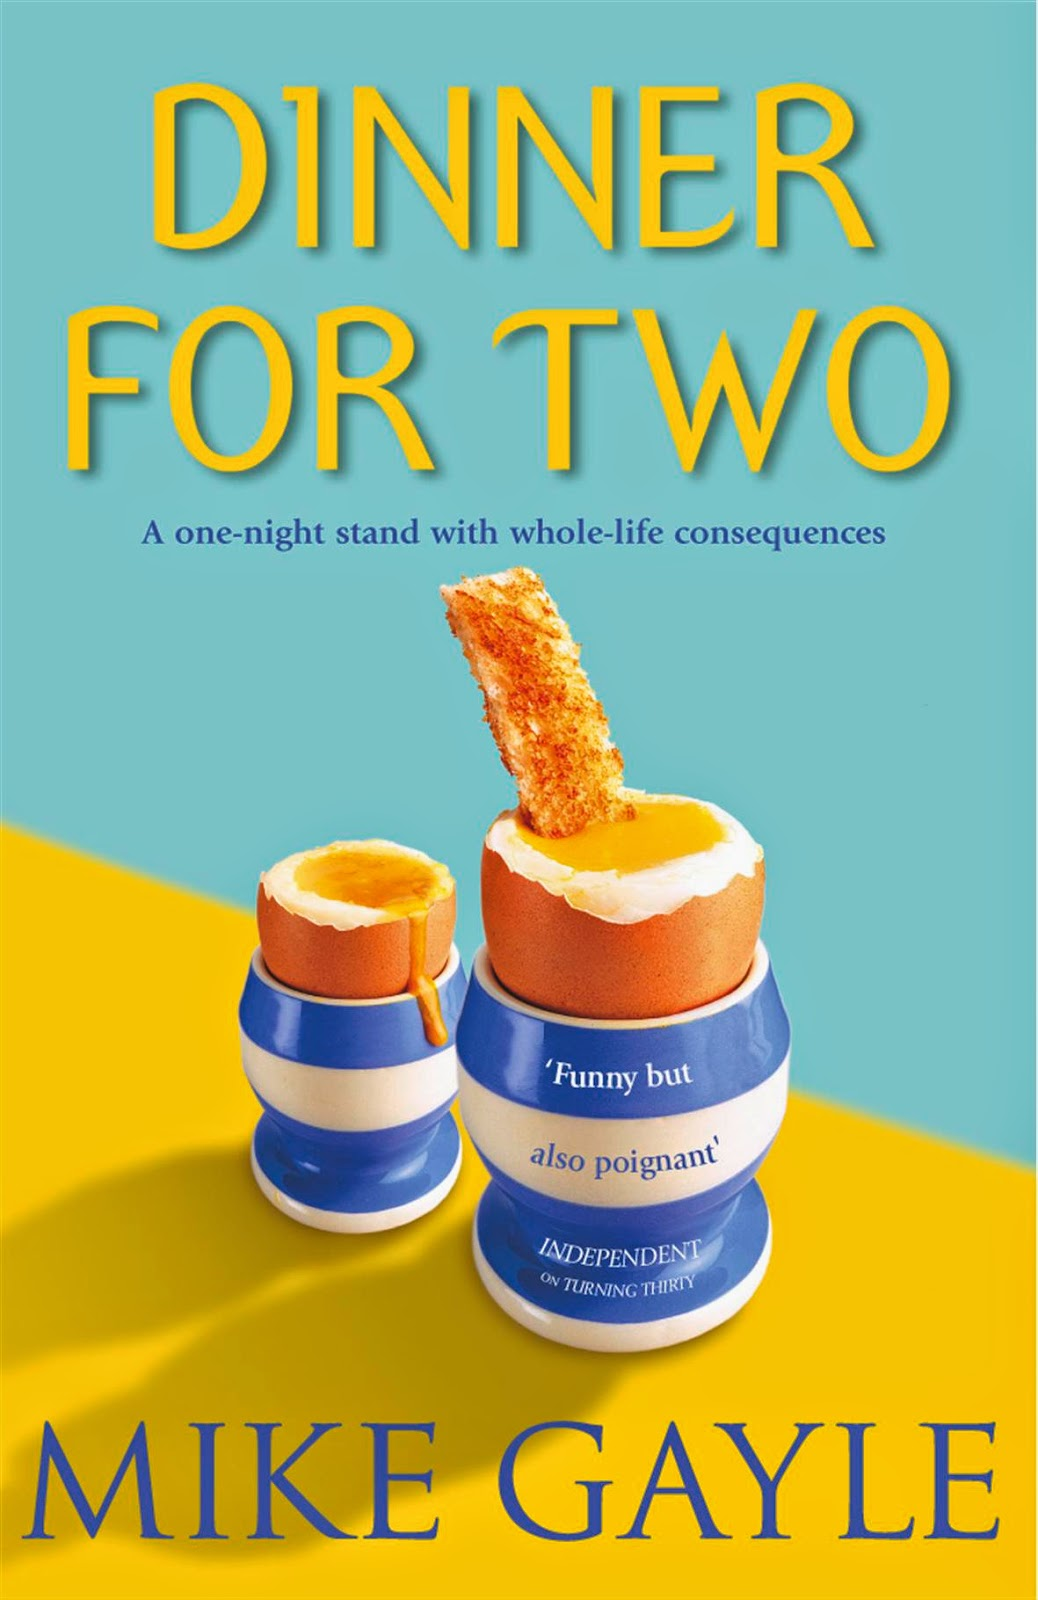 Books For Men Book Reviews: Dinner For Two by Mike Gayle